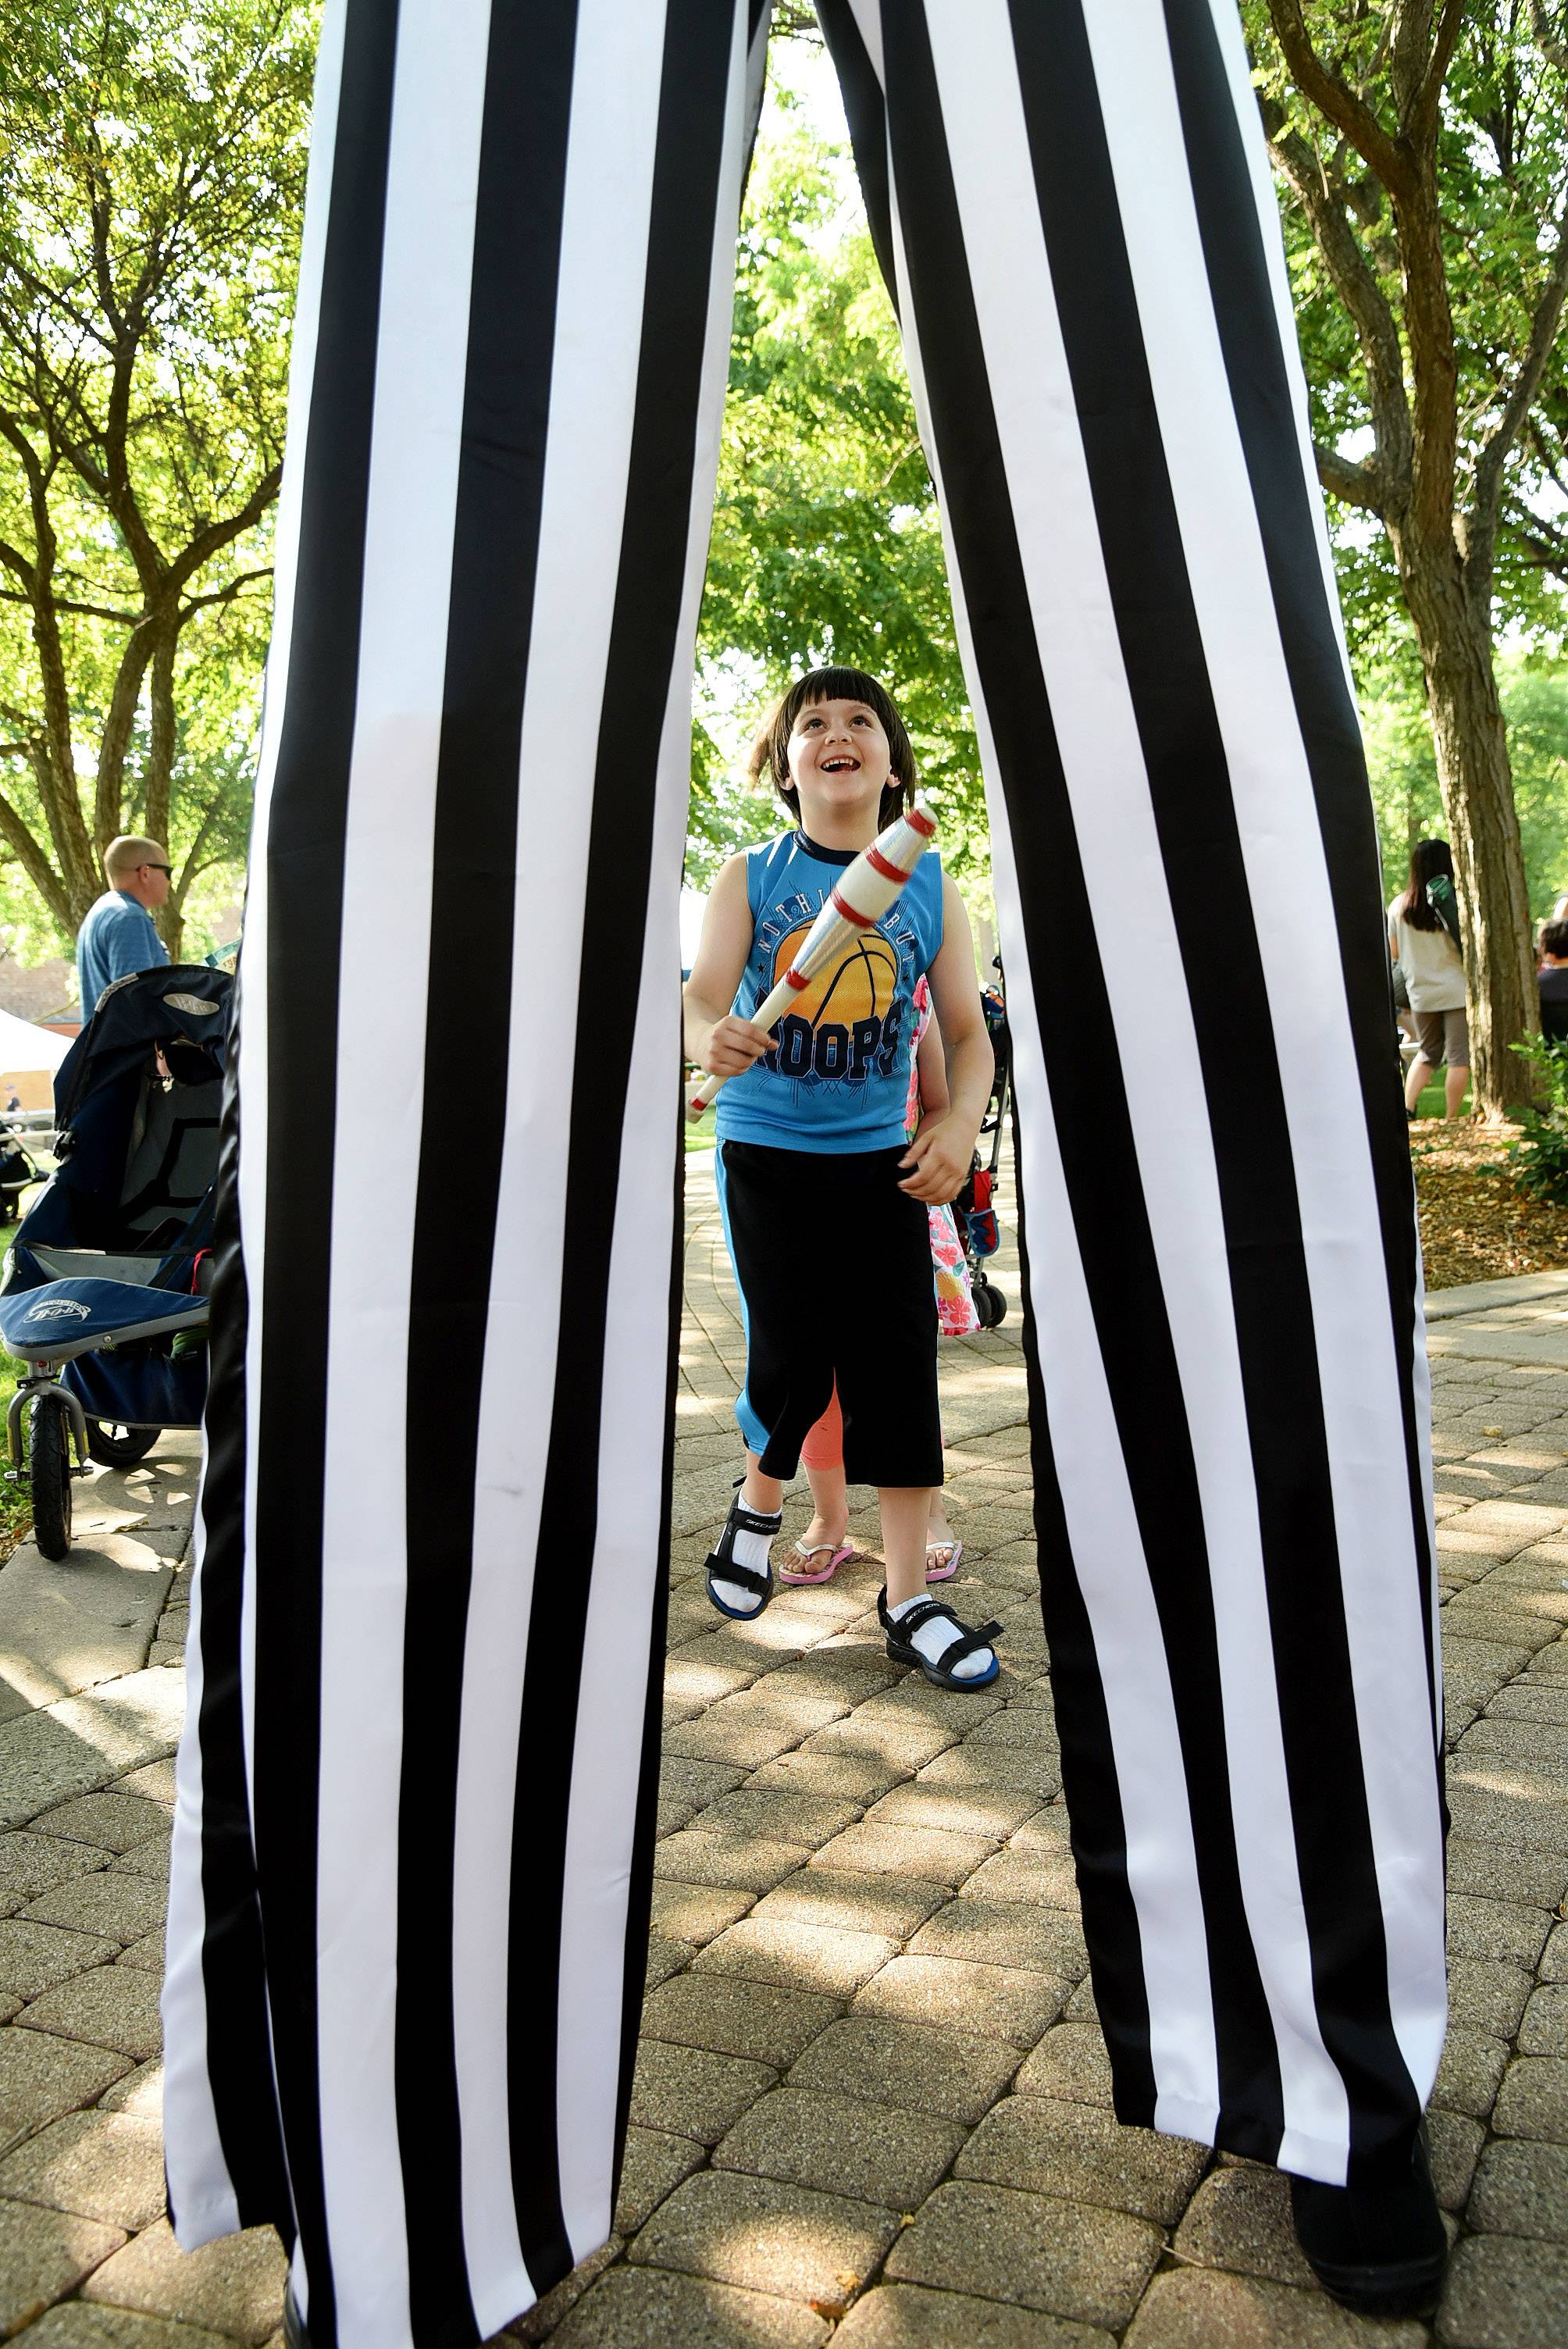 Isaiah Mulhall, 7, of Arlington Heights helps out juggler on stilts Jason Kollum Friday at Picnic in the Park at North School Park in Arlington Heights.